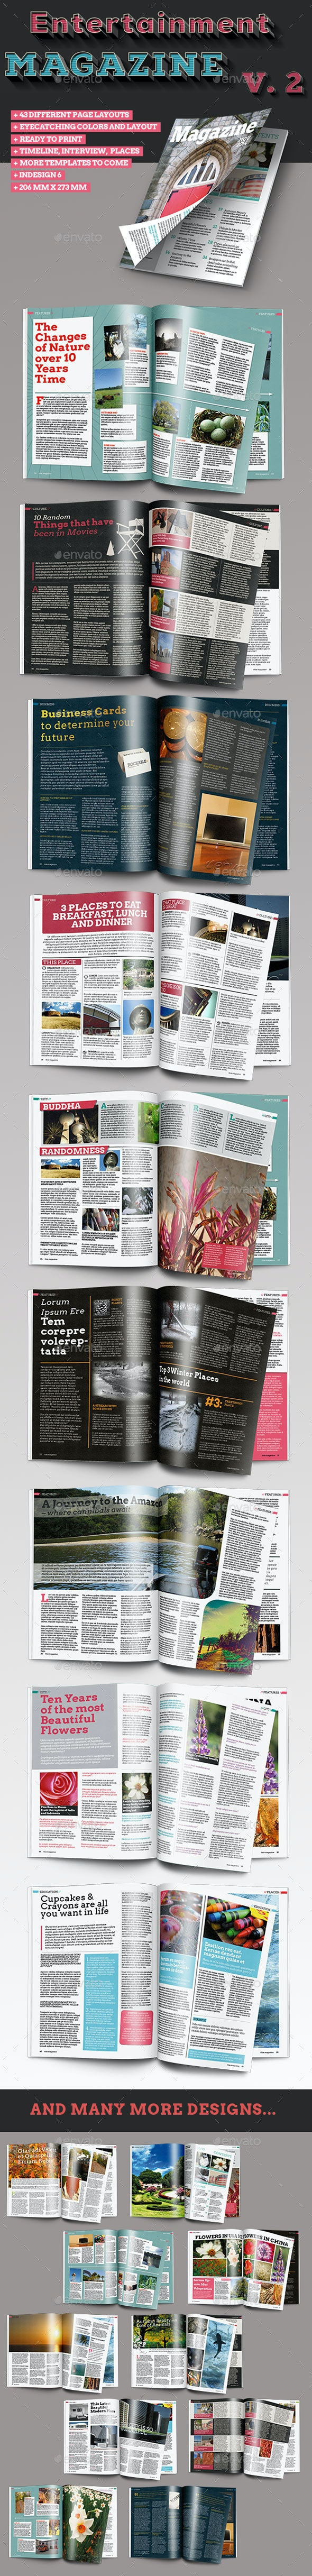 40 Page InDesign Magazine Template Vol. 2 - Magazines Print Templates